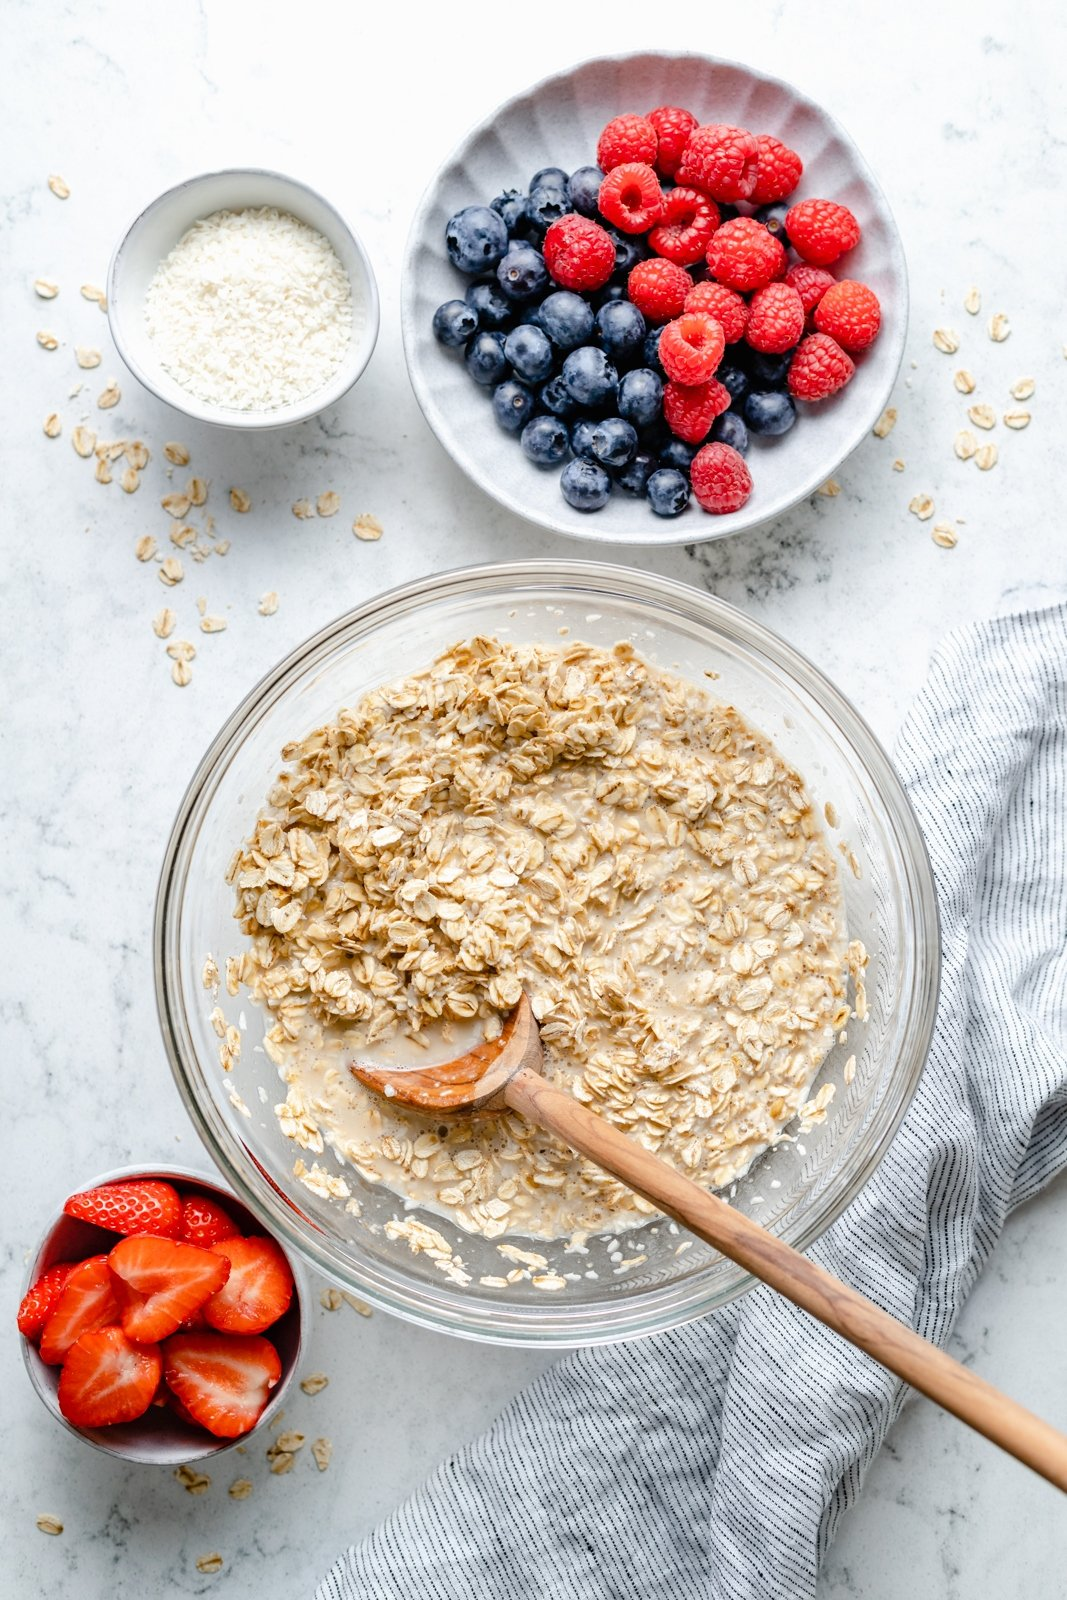 mixing oatmeal next to bowls of berries for berry baked oatmeal